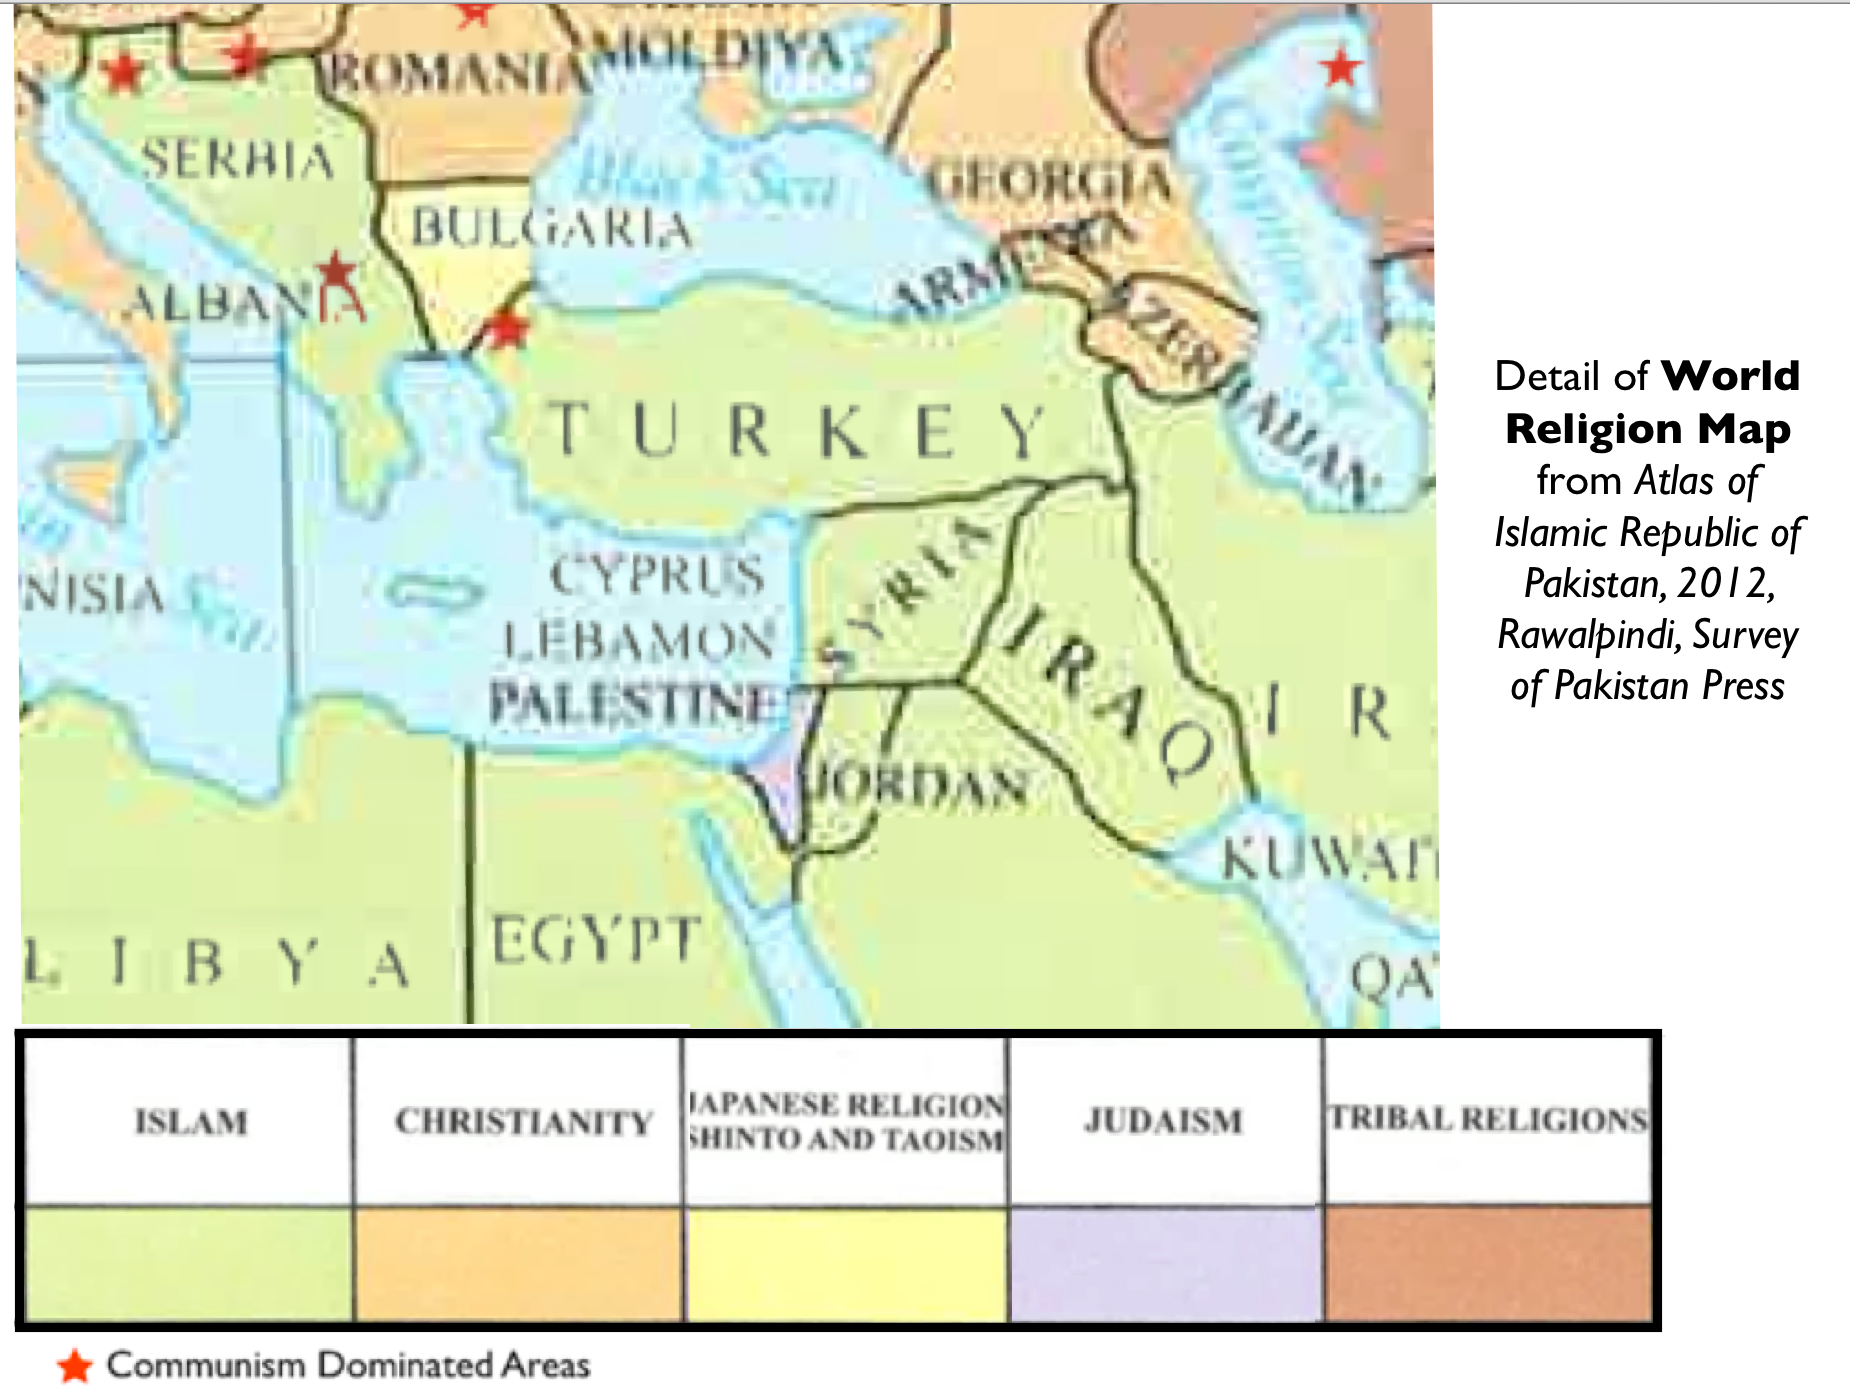 Mapping Religion In The Unfortunate Atlas Of Islamic Republic Of - World religion map judaism